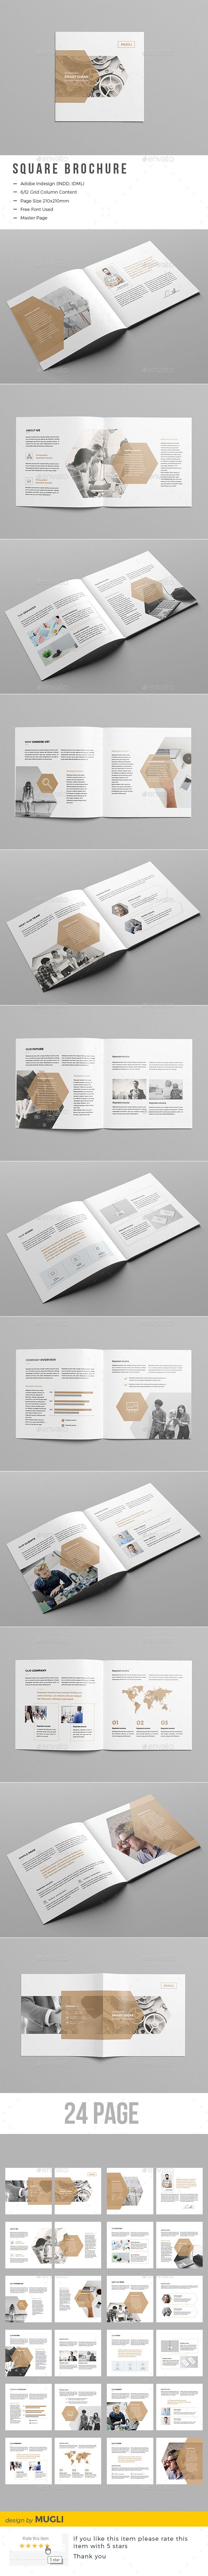 Corporate Square Brochure Template InDesign INDD More